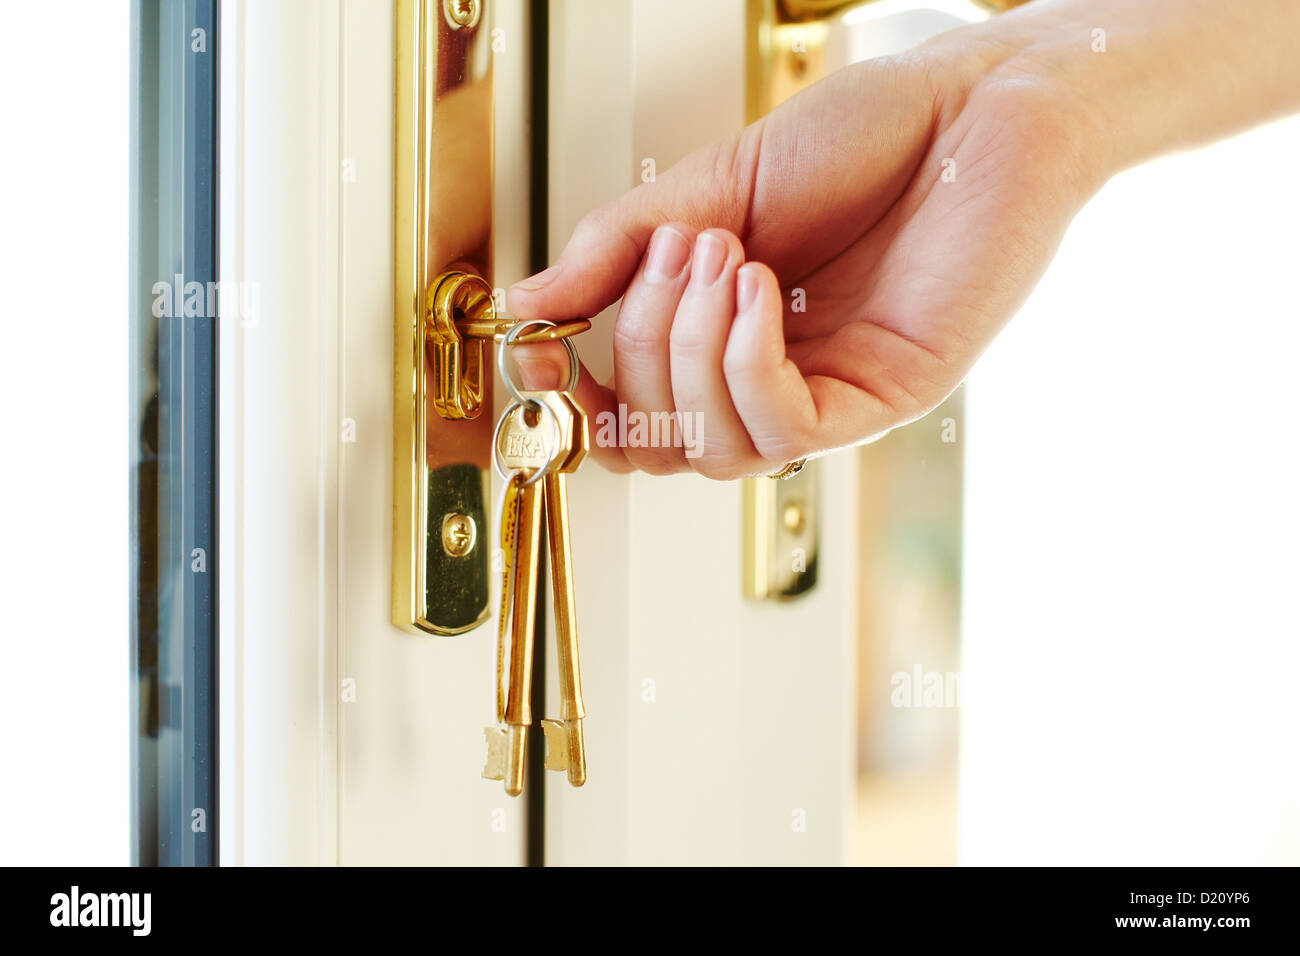 Lock with keys - Stock Image